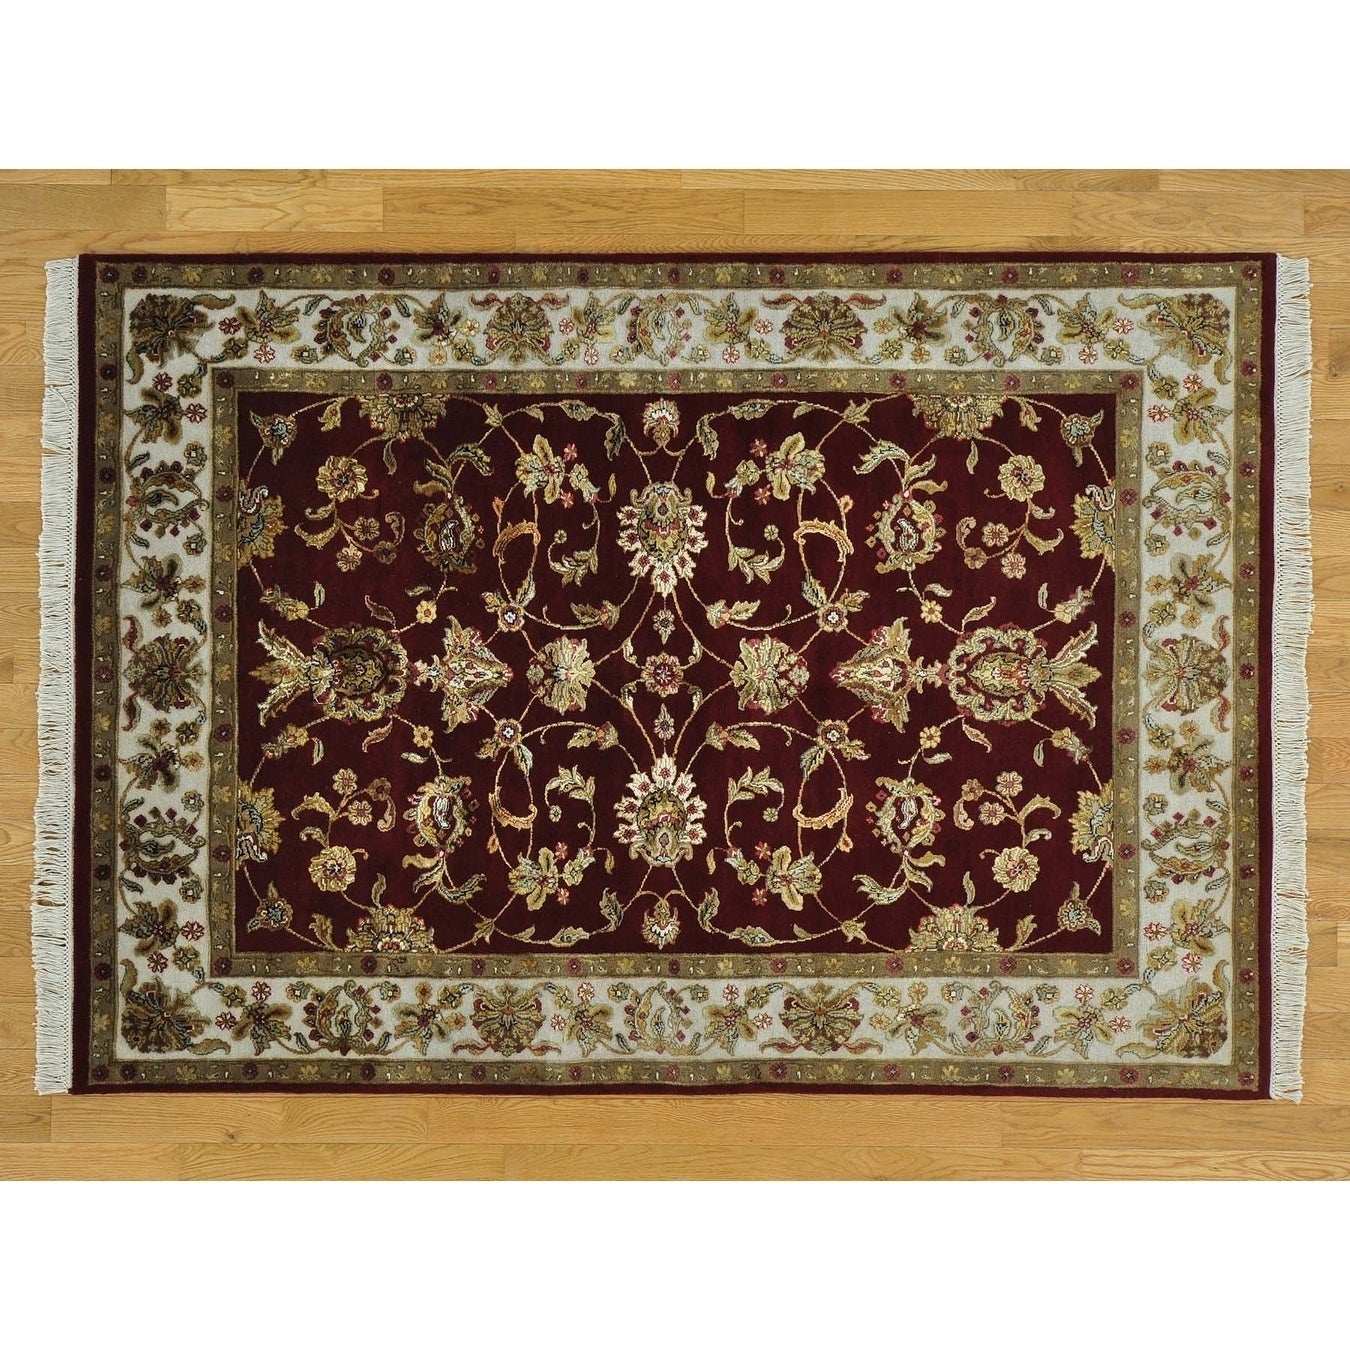 Hand Knotted Red Rajasthan with Wool & Silk Oriental Rug - 5' x 7'2